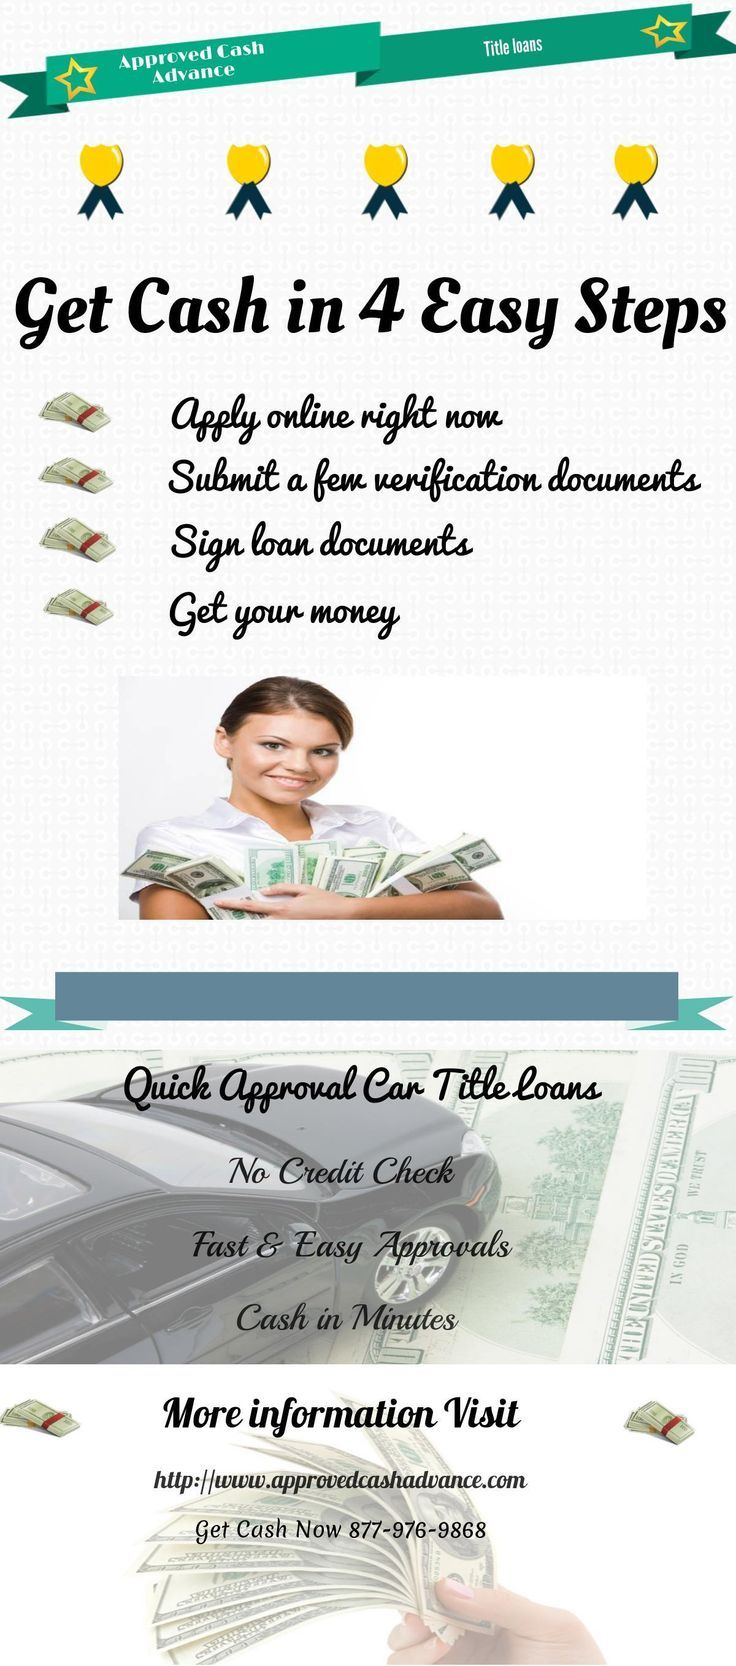 Approved Cash Offers You A Better And More Cost Effective Alternative To Outrage Get Cash Now Bank Fees Document Sign